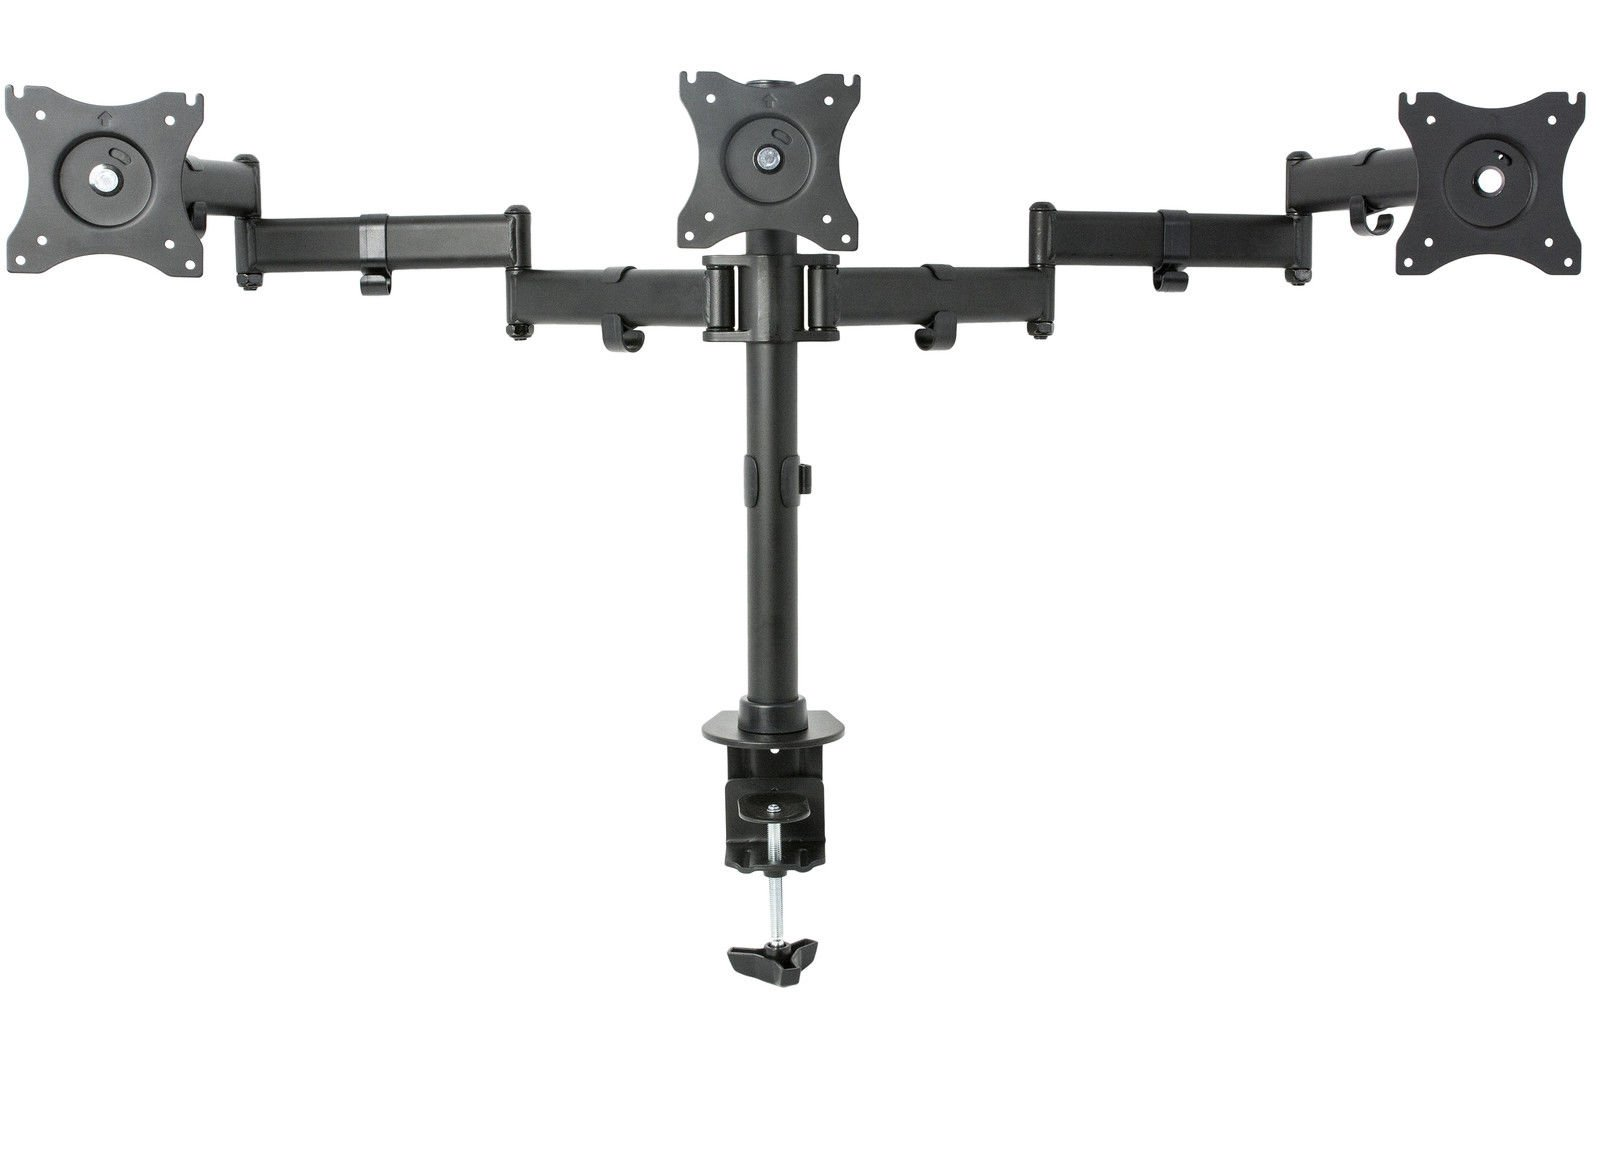 Triple Monitor Adjustable Mount / Articulating Stand for 3 LCD Screens up to 27''